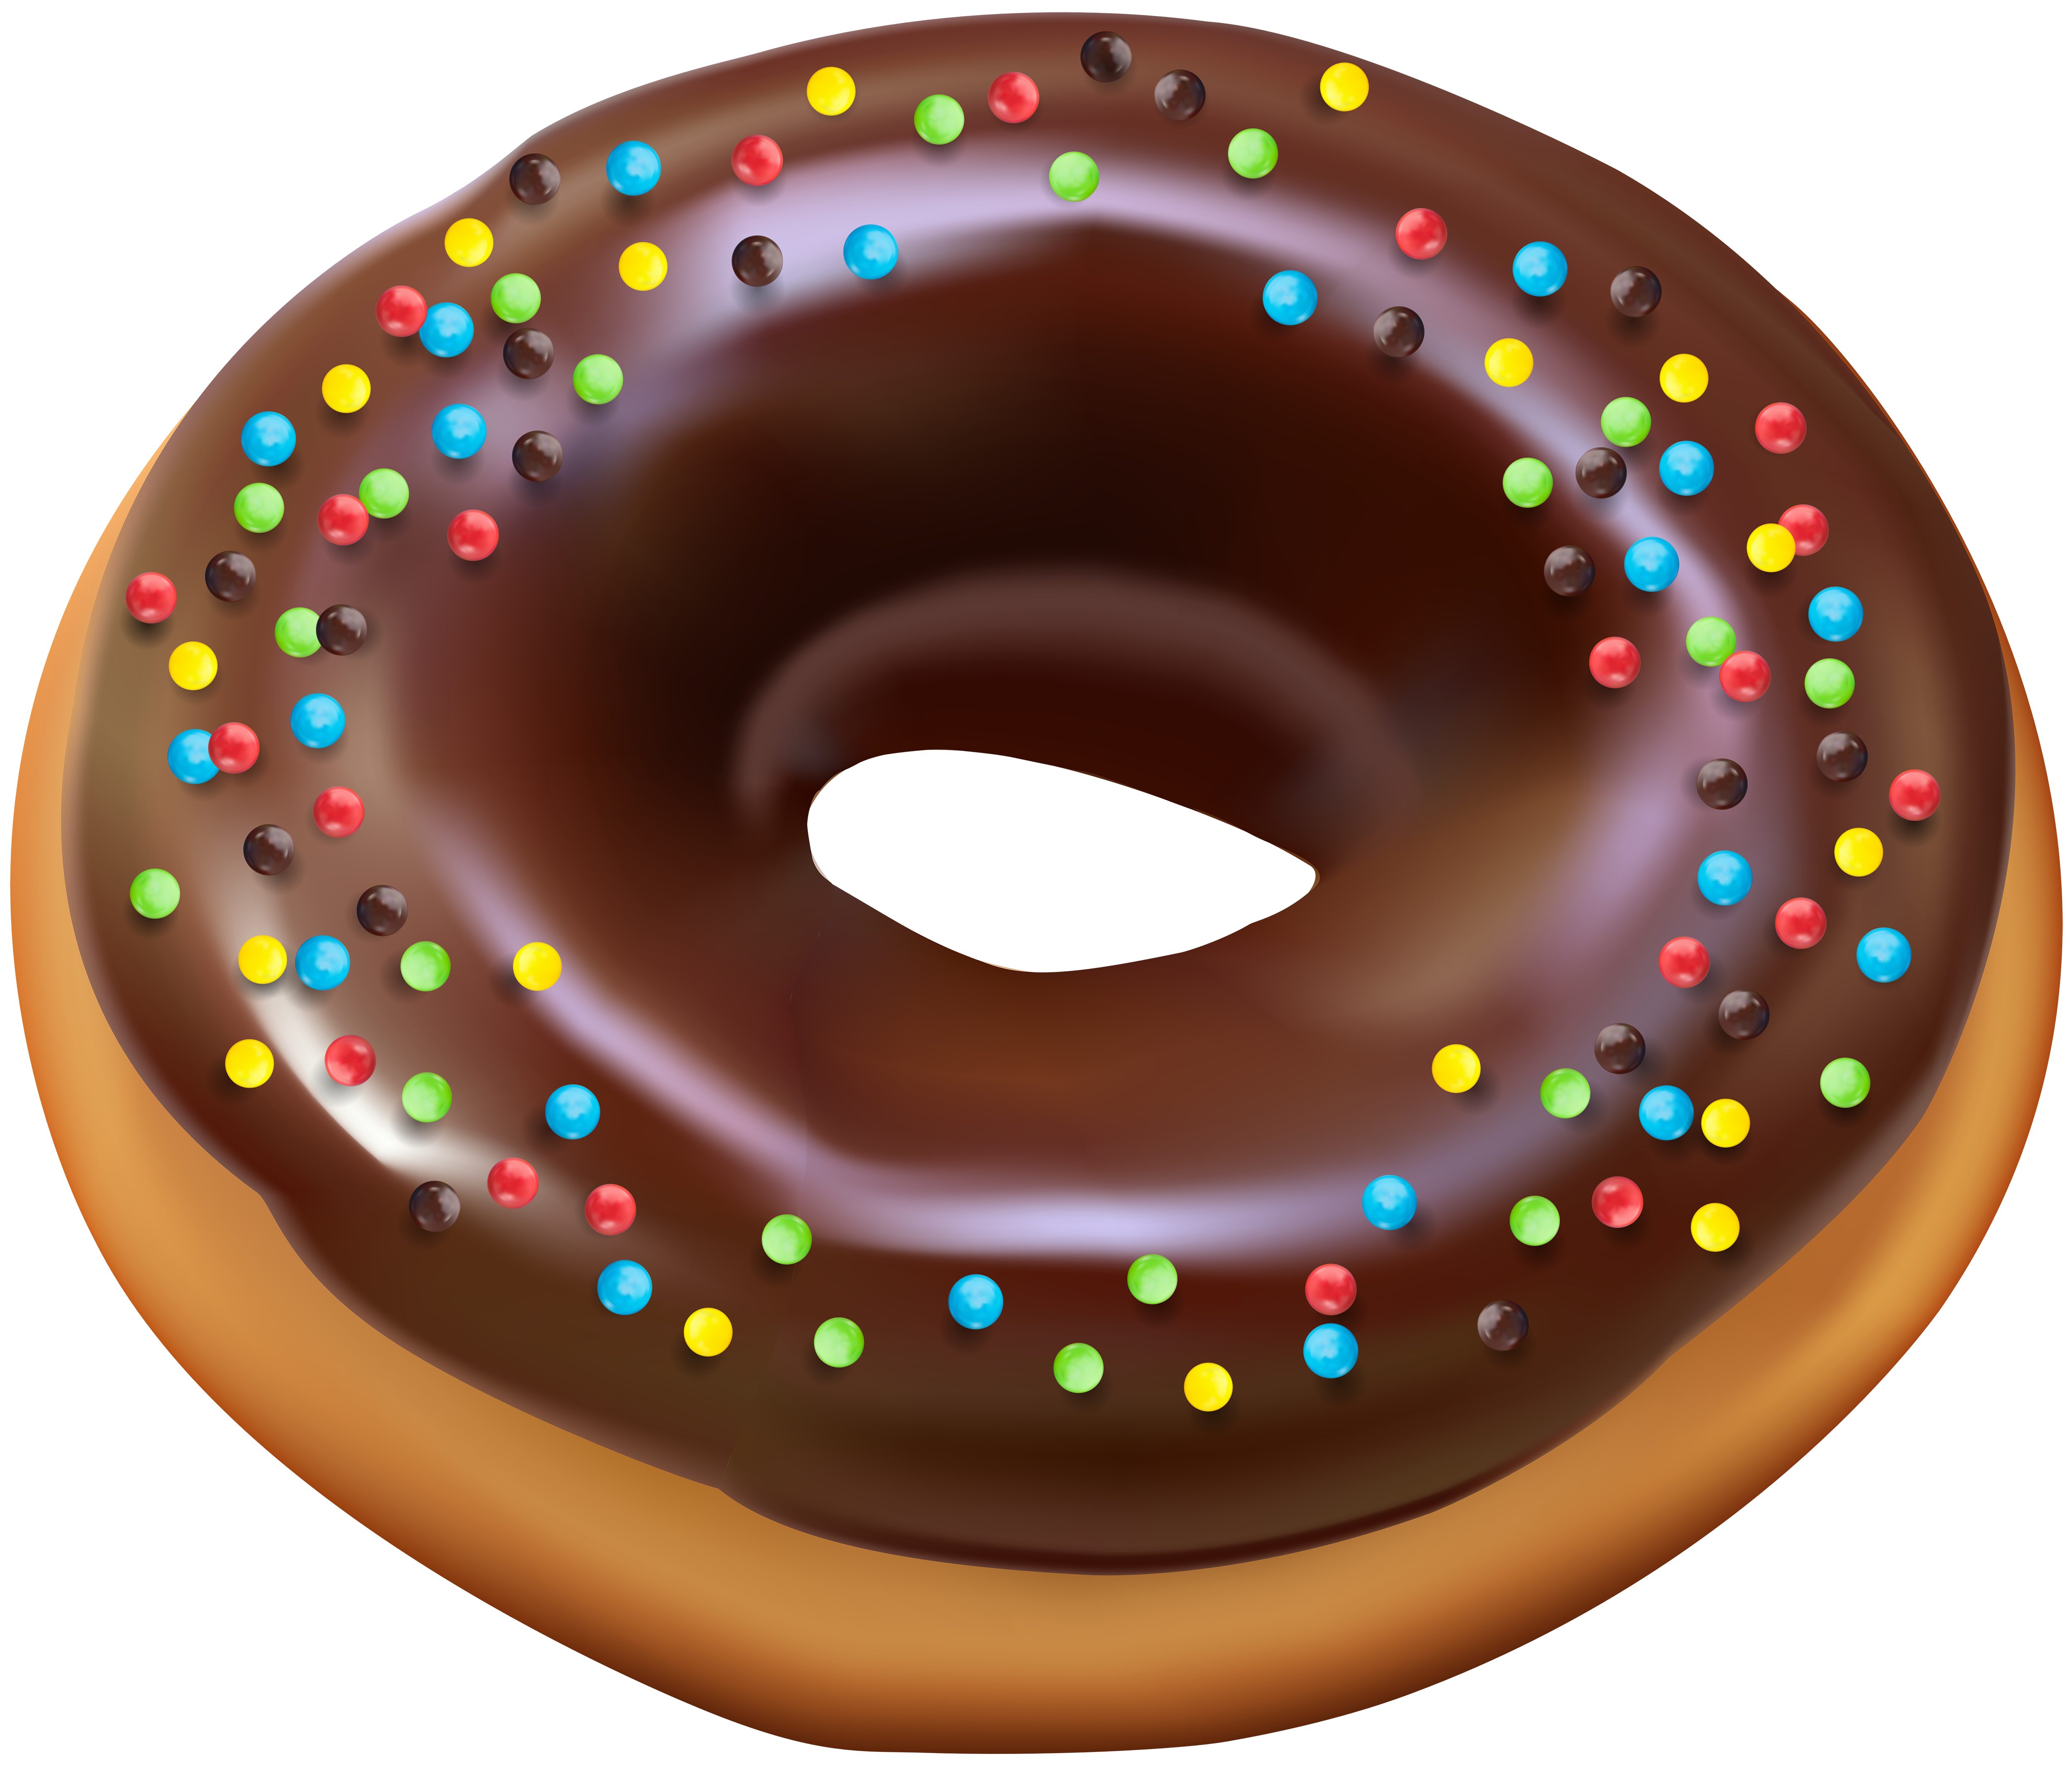 Christmas donut clipart clip freeuse stock Donut PNG Clip Art Image | Gallery Yopriceville - High-Quality ... clip freeuse stock